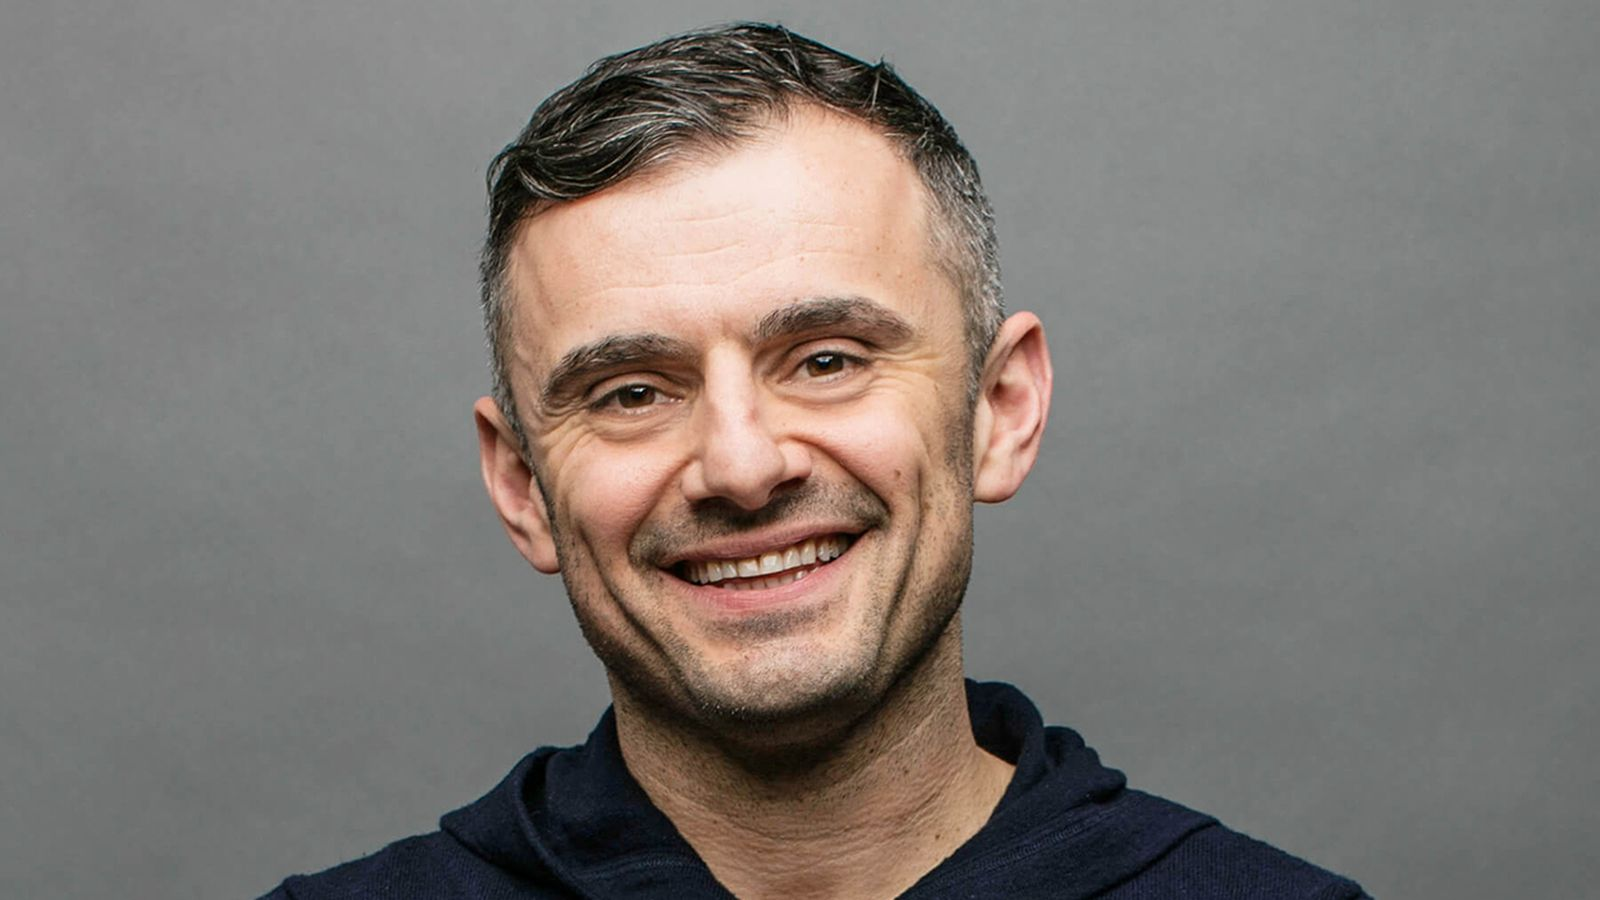 how tall is gary vee